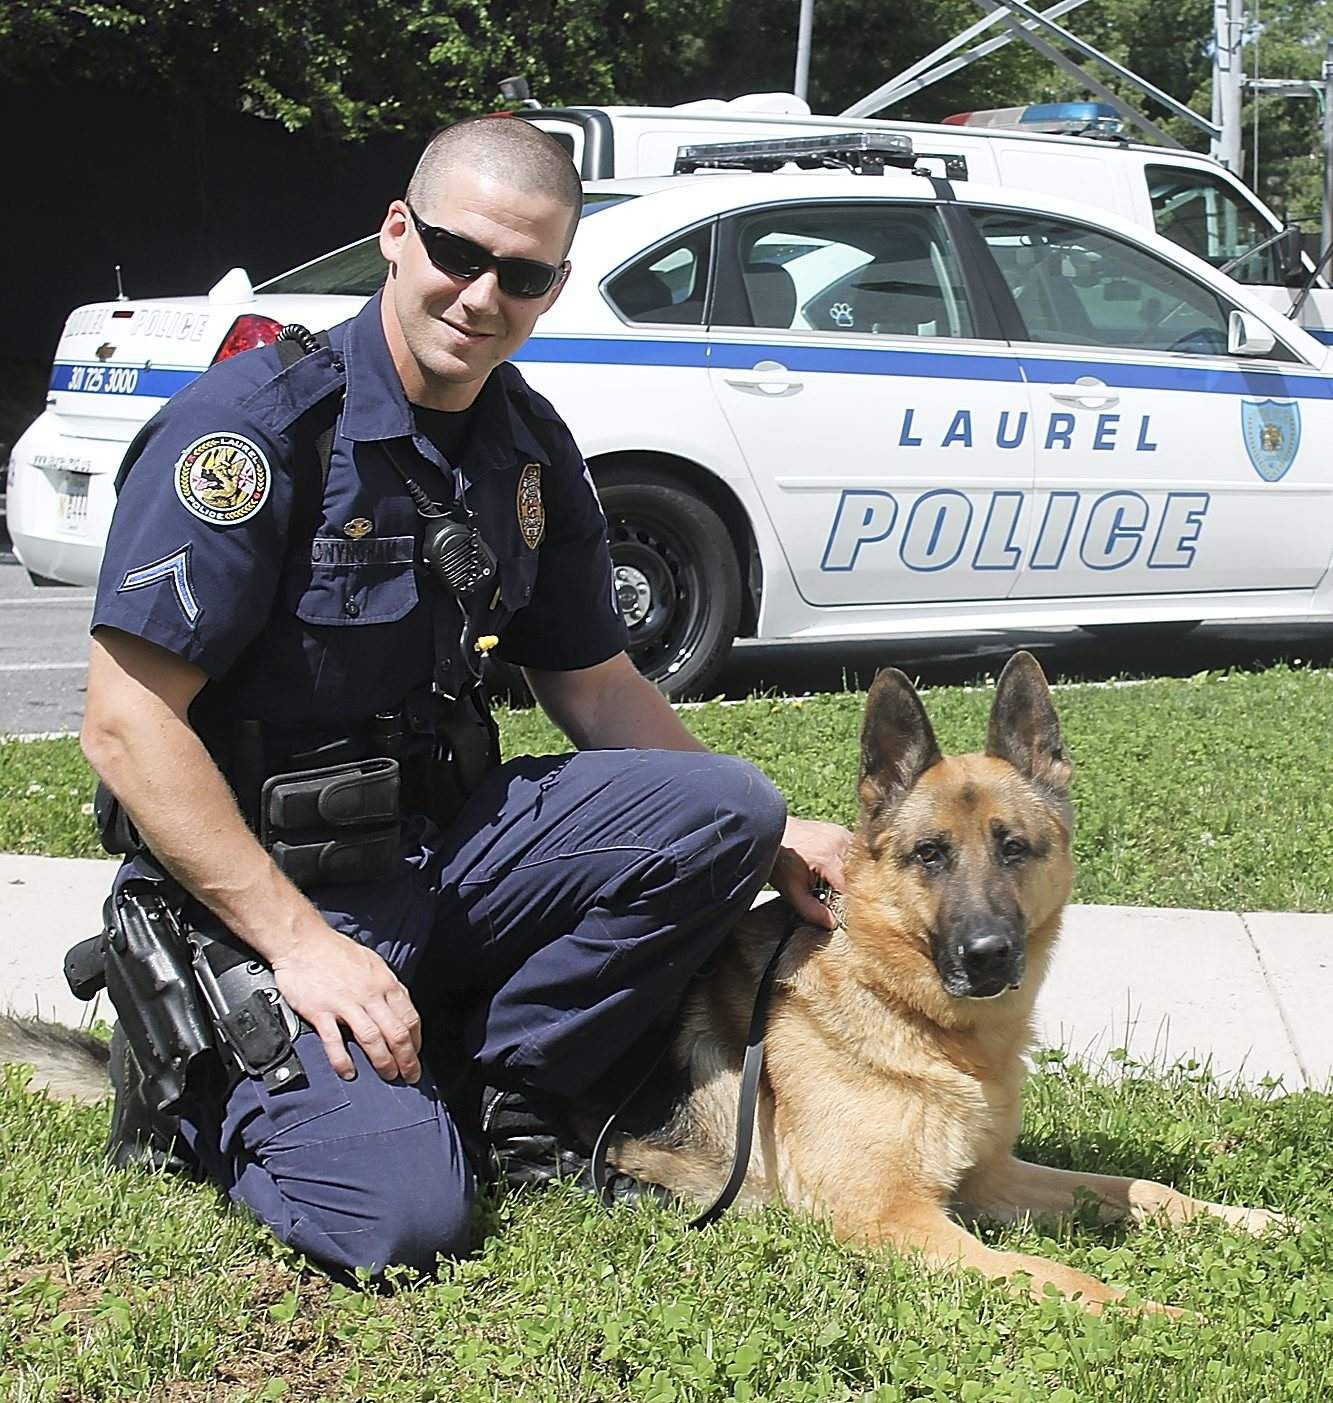 Laurel Police, Maryland. Police dogs, Military working